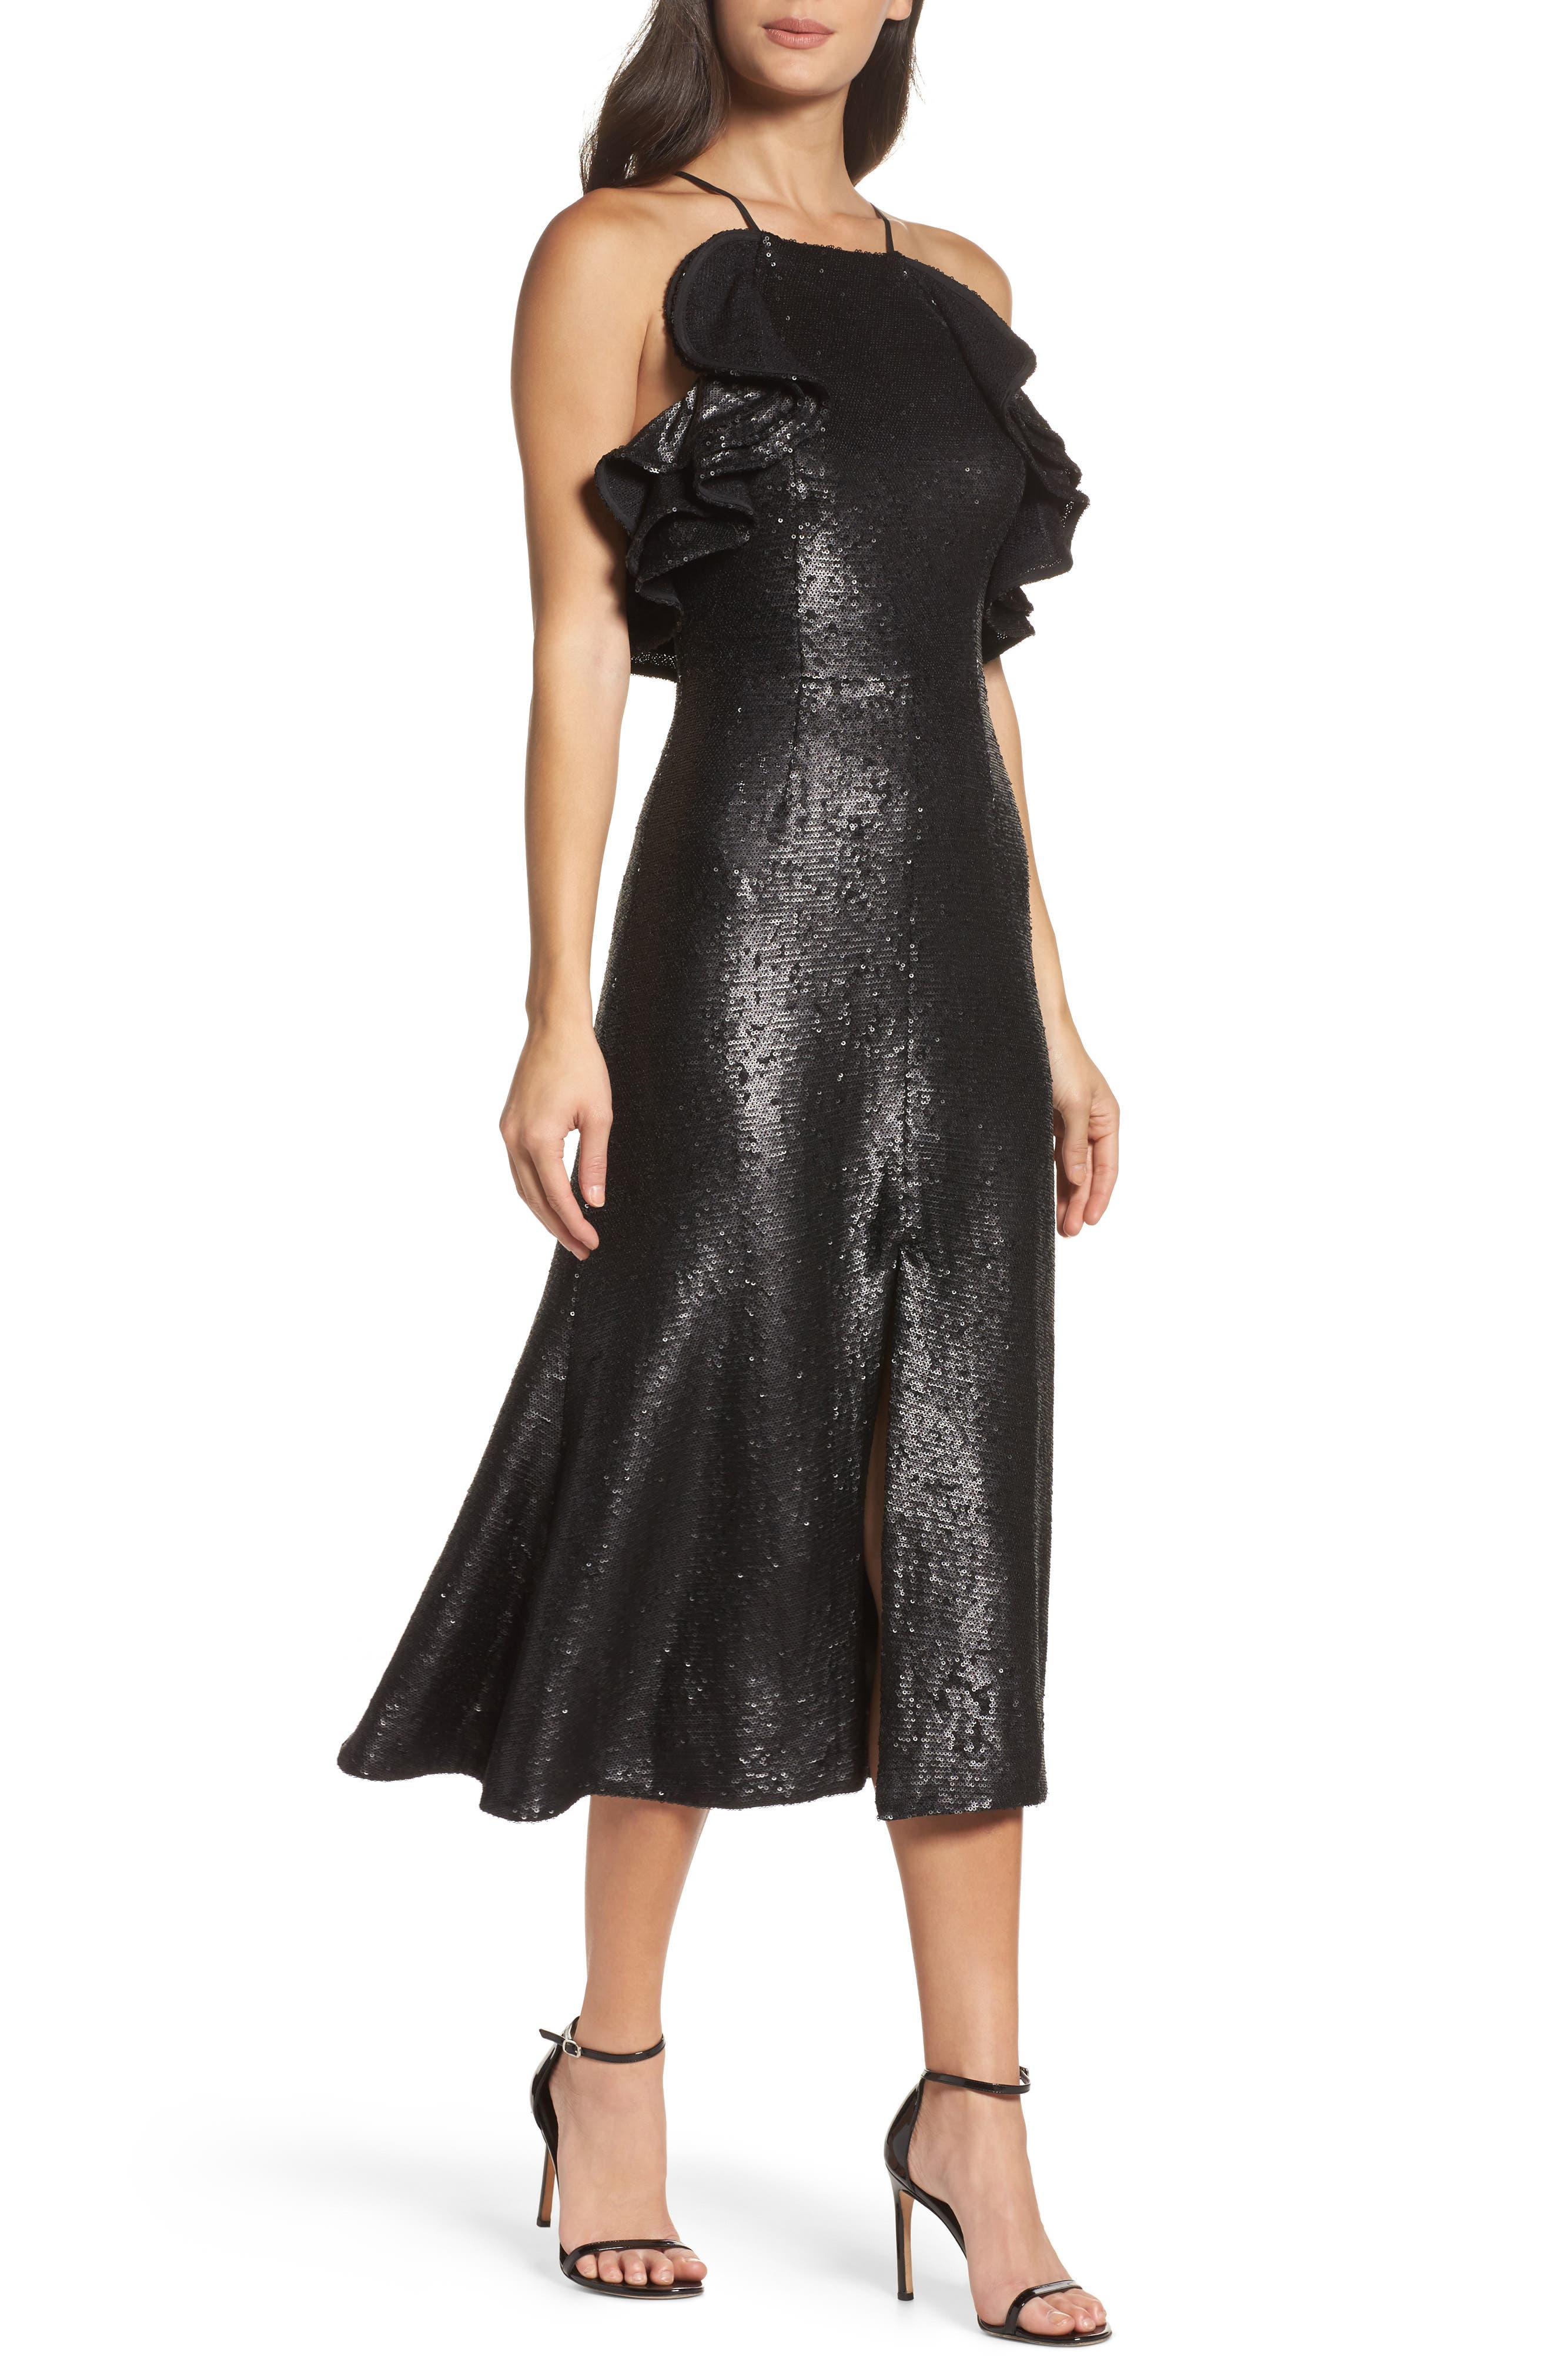 Illuminated Sequin Ruffle Midi Dress,                             Main thumbnail 1, color,                             001